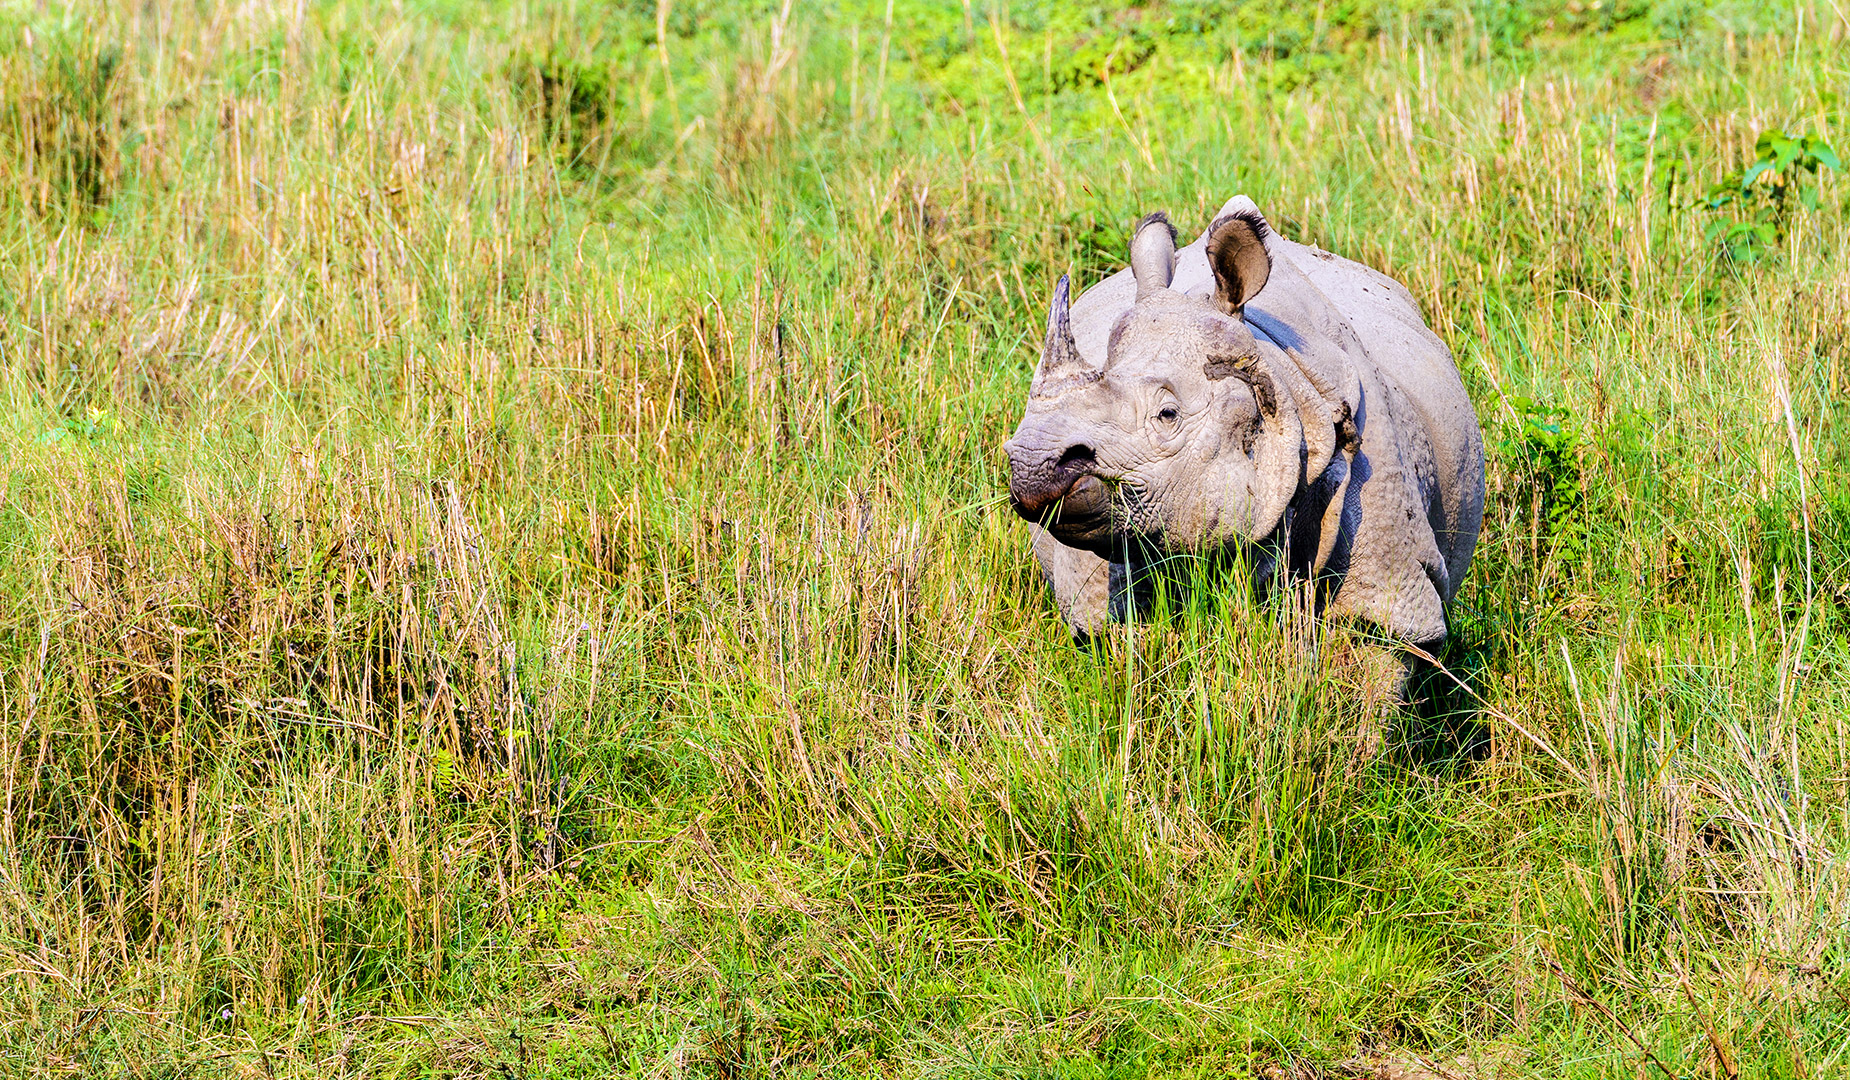 The greater one-horned rhinoceros